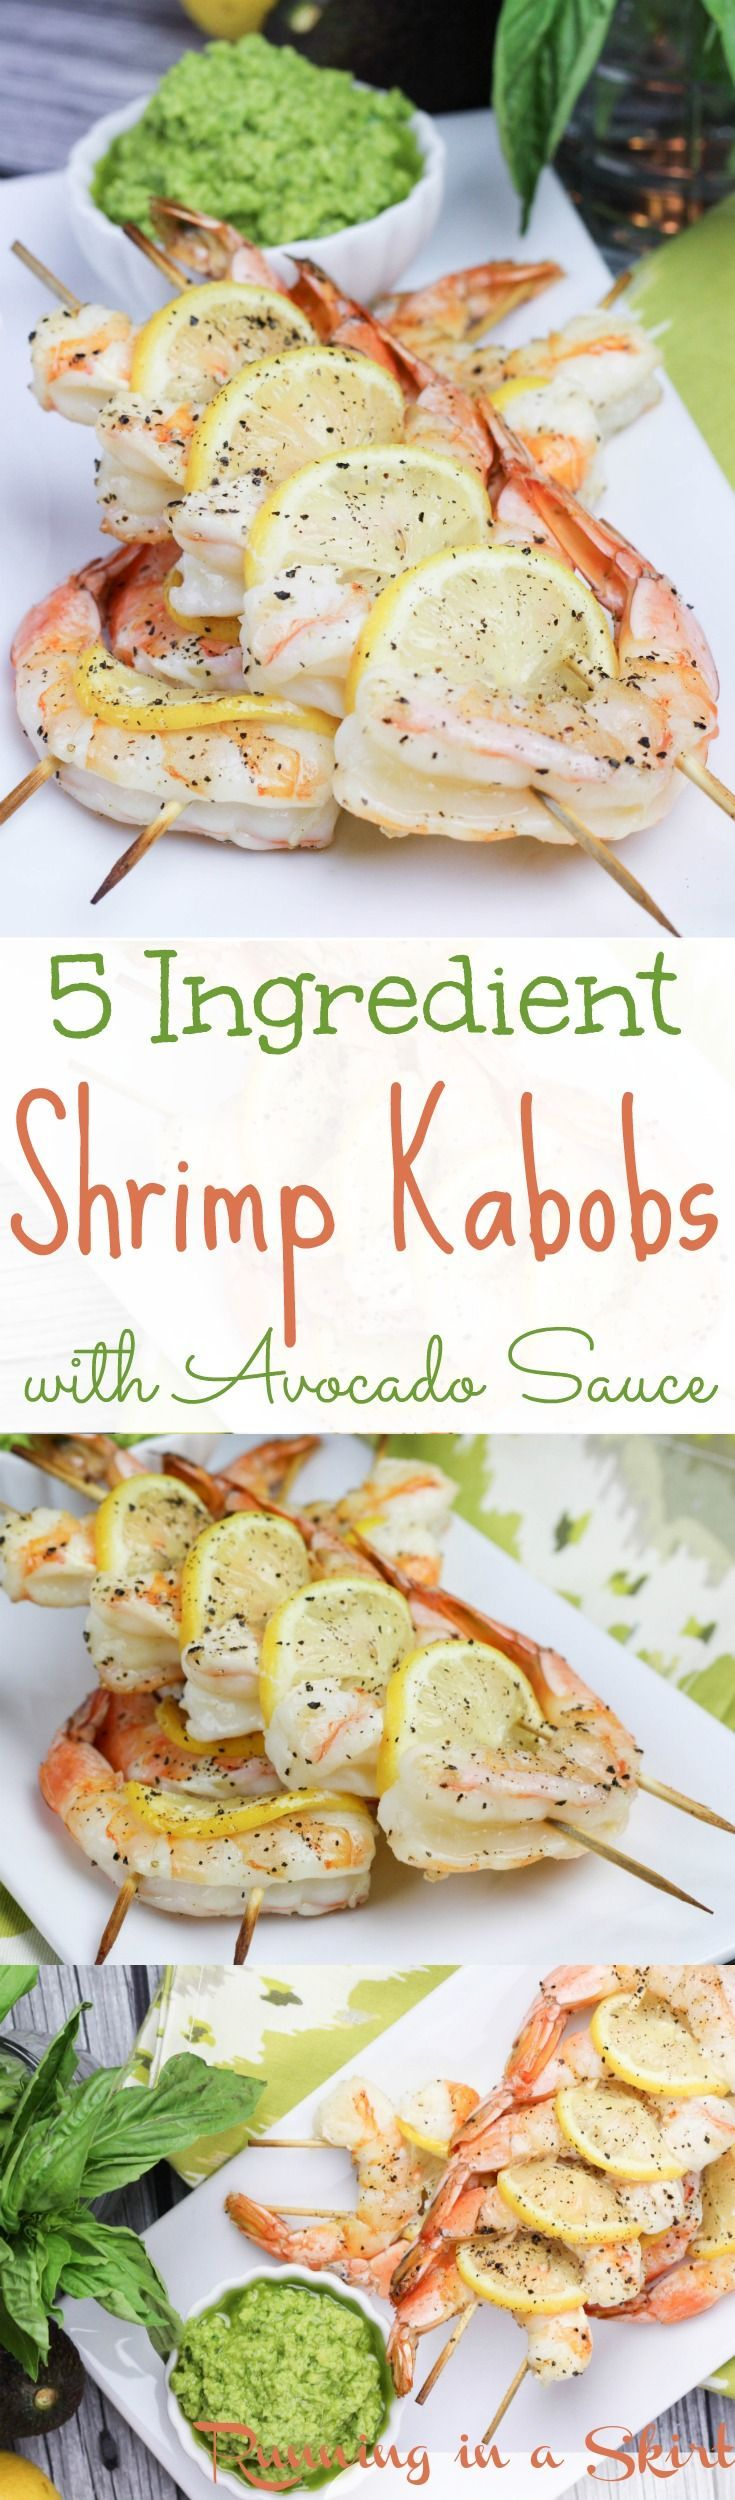 5 Ingredient Grilled Shrimp Kabobs with Avocado Dipping Sauce recipes.  An easy, healthy and fun dinner made on the grill. Simple seasoning and dipped avocado sauces. The best grililng ideas - includes instructions on how to create the lemon fans. / Running in a Skirt